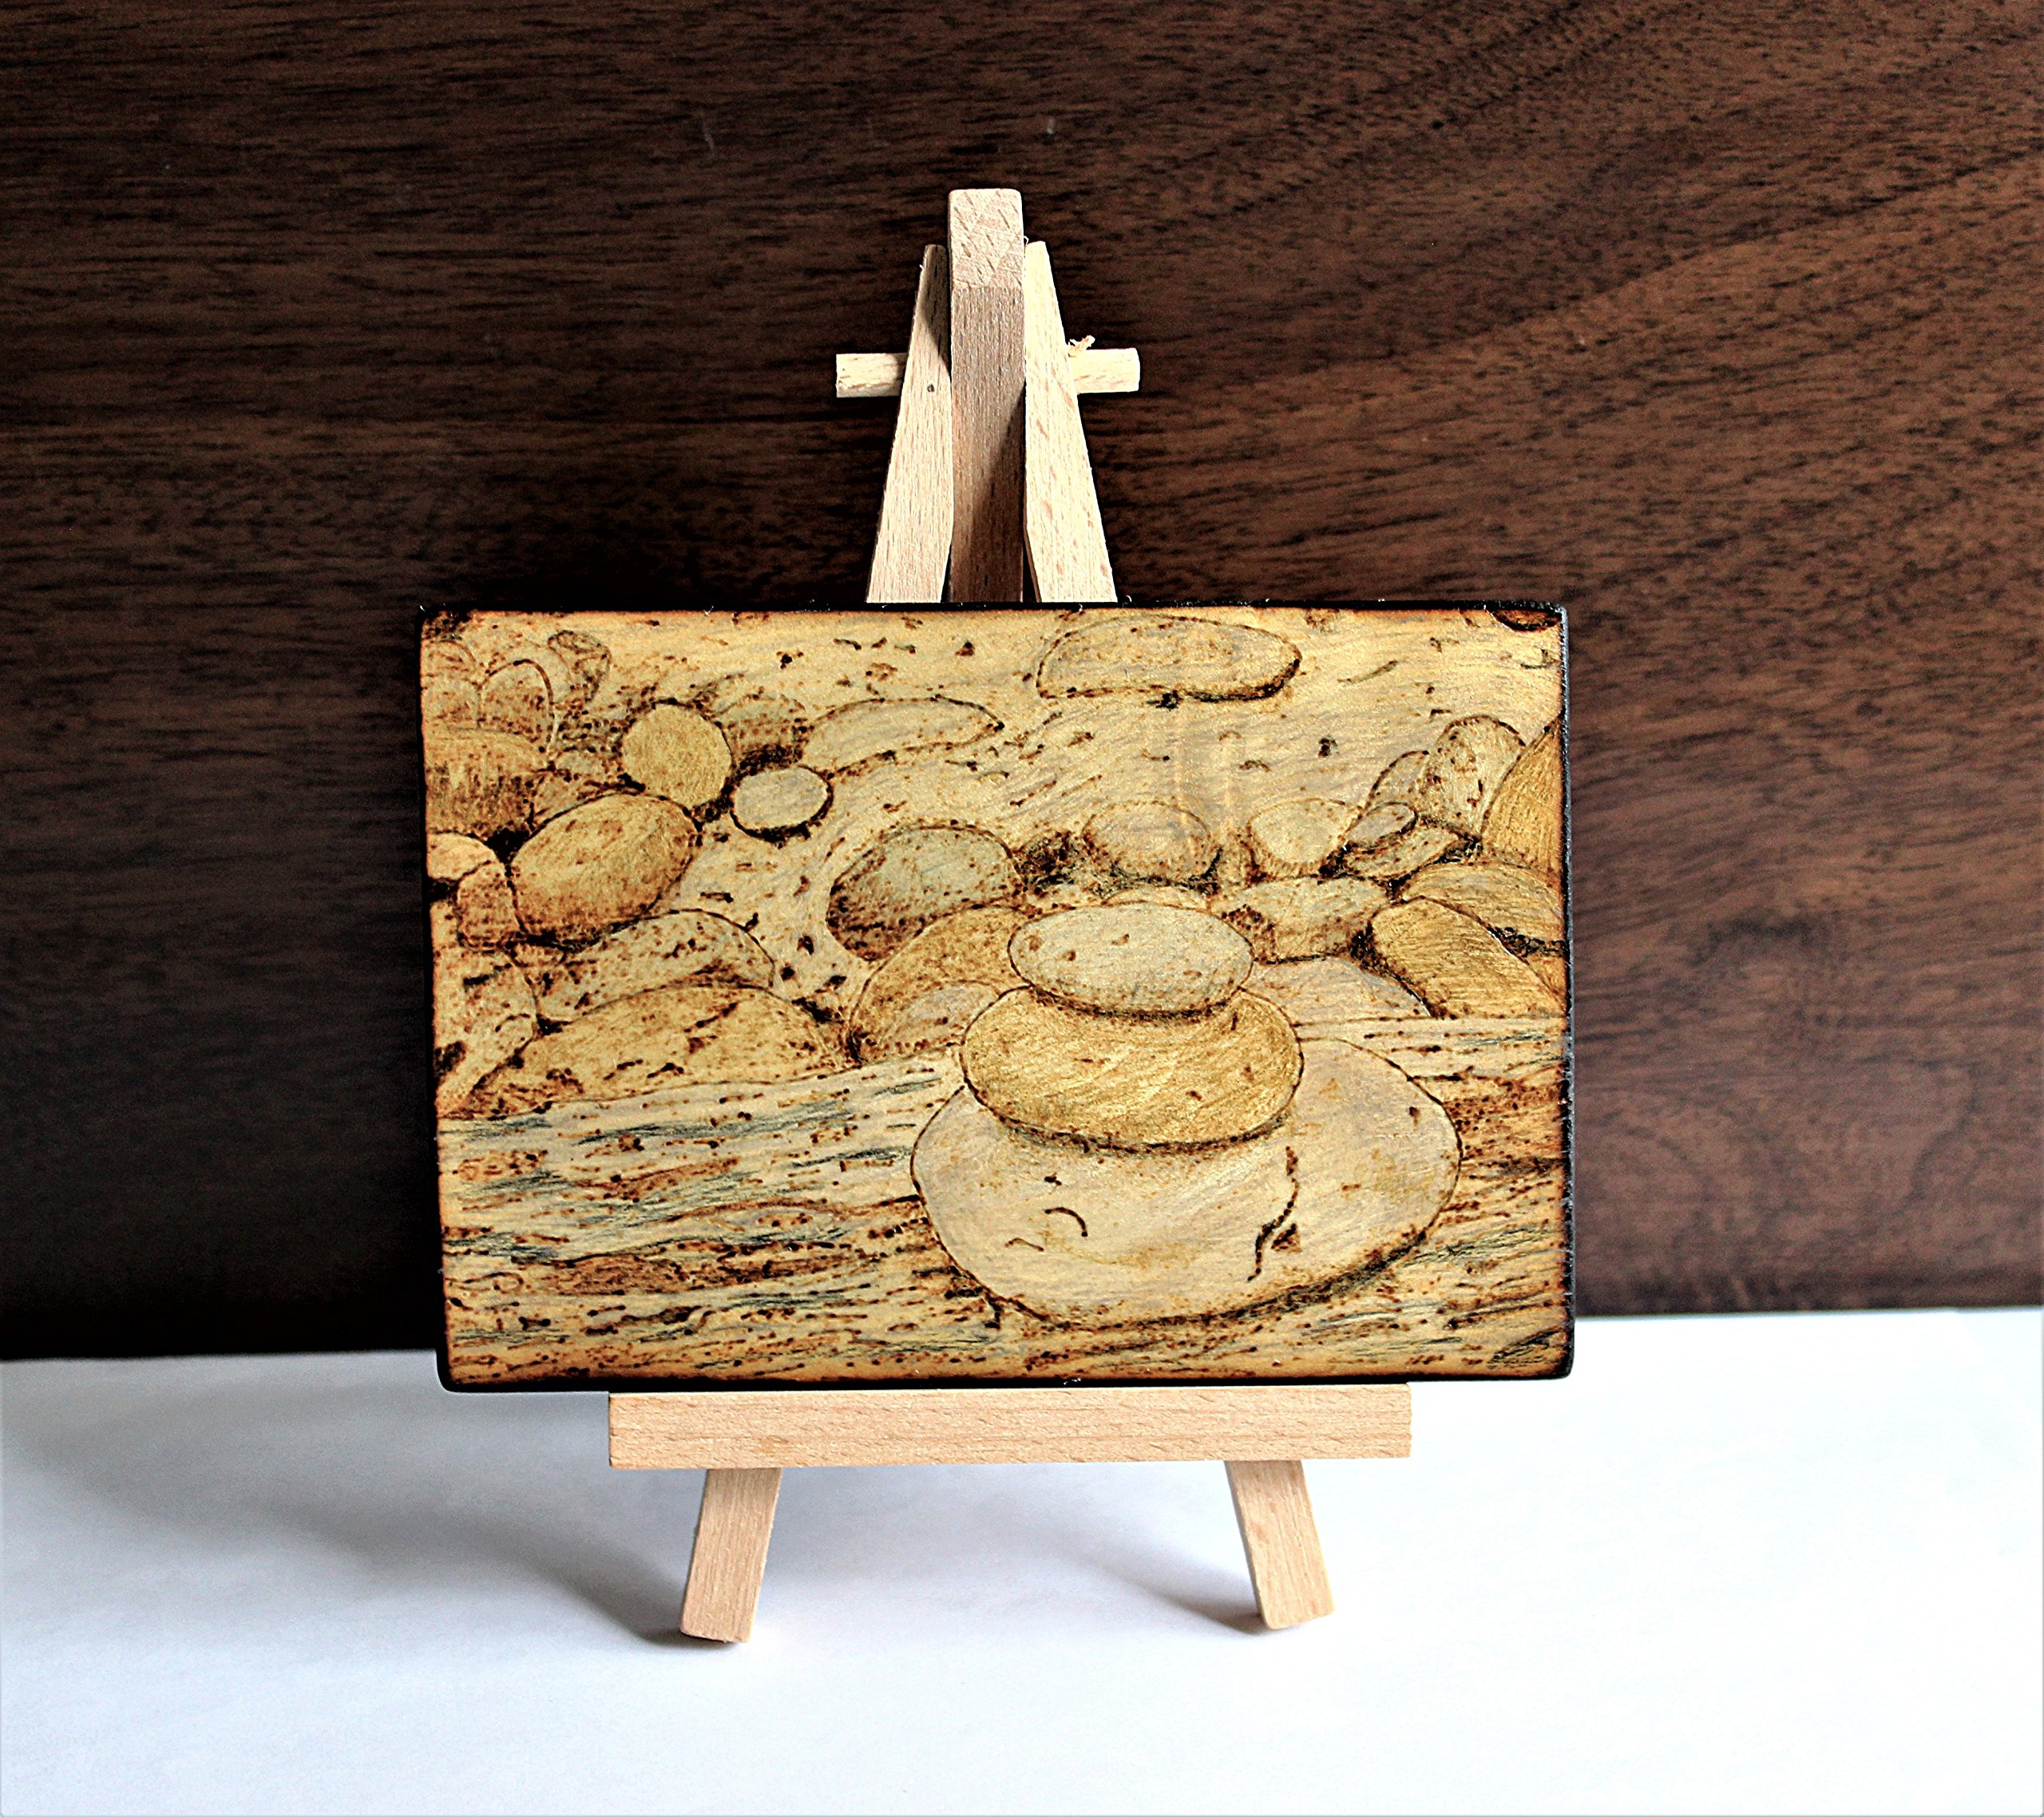 Wood Burned Cairn Stones Pyrography Small Woodburned Nature Rocky Shoreline Picture Desktop Art by Hendywood (Image #1)